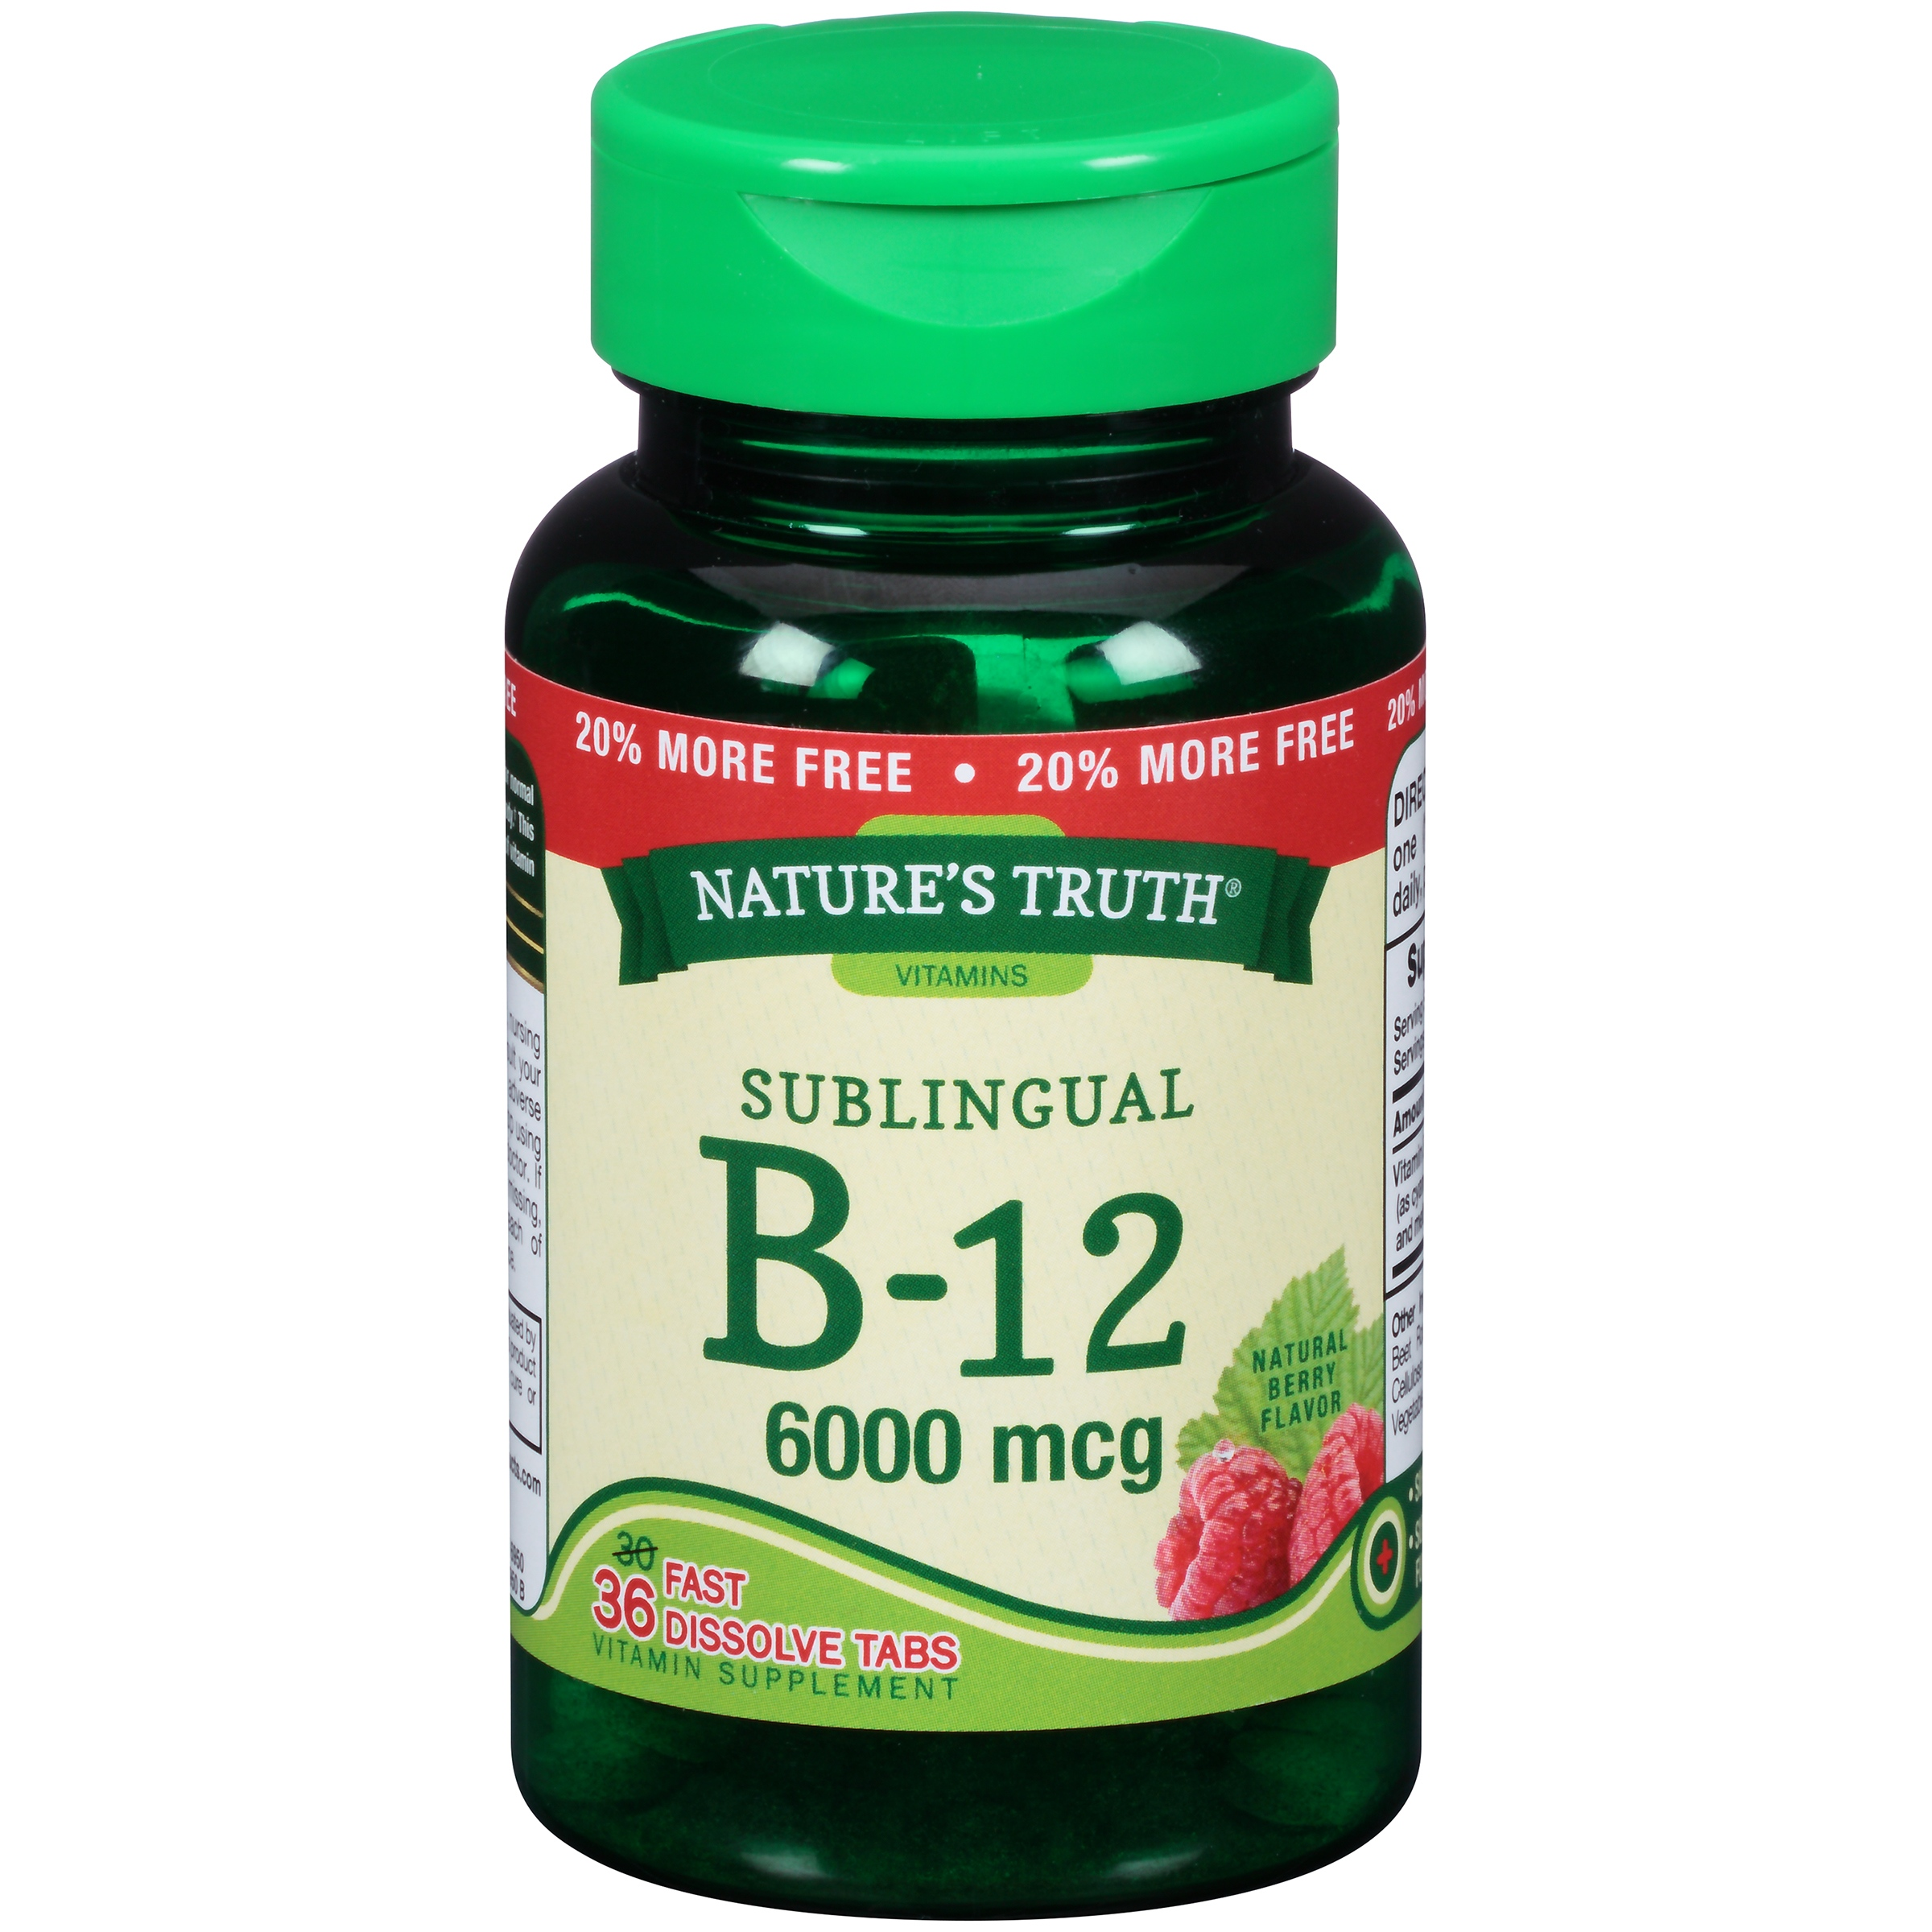 Nature's Truth® Sublingual B-12 6000mcg Vitamin Supplement Fast Dissolve Tabs 36 ct Bottle